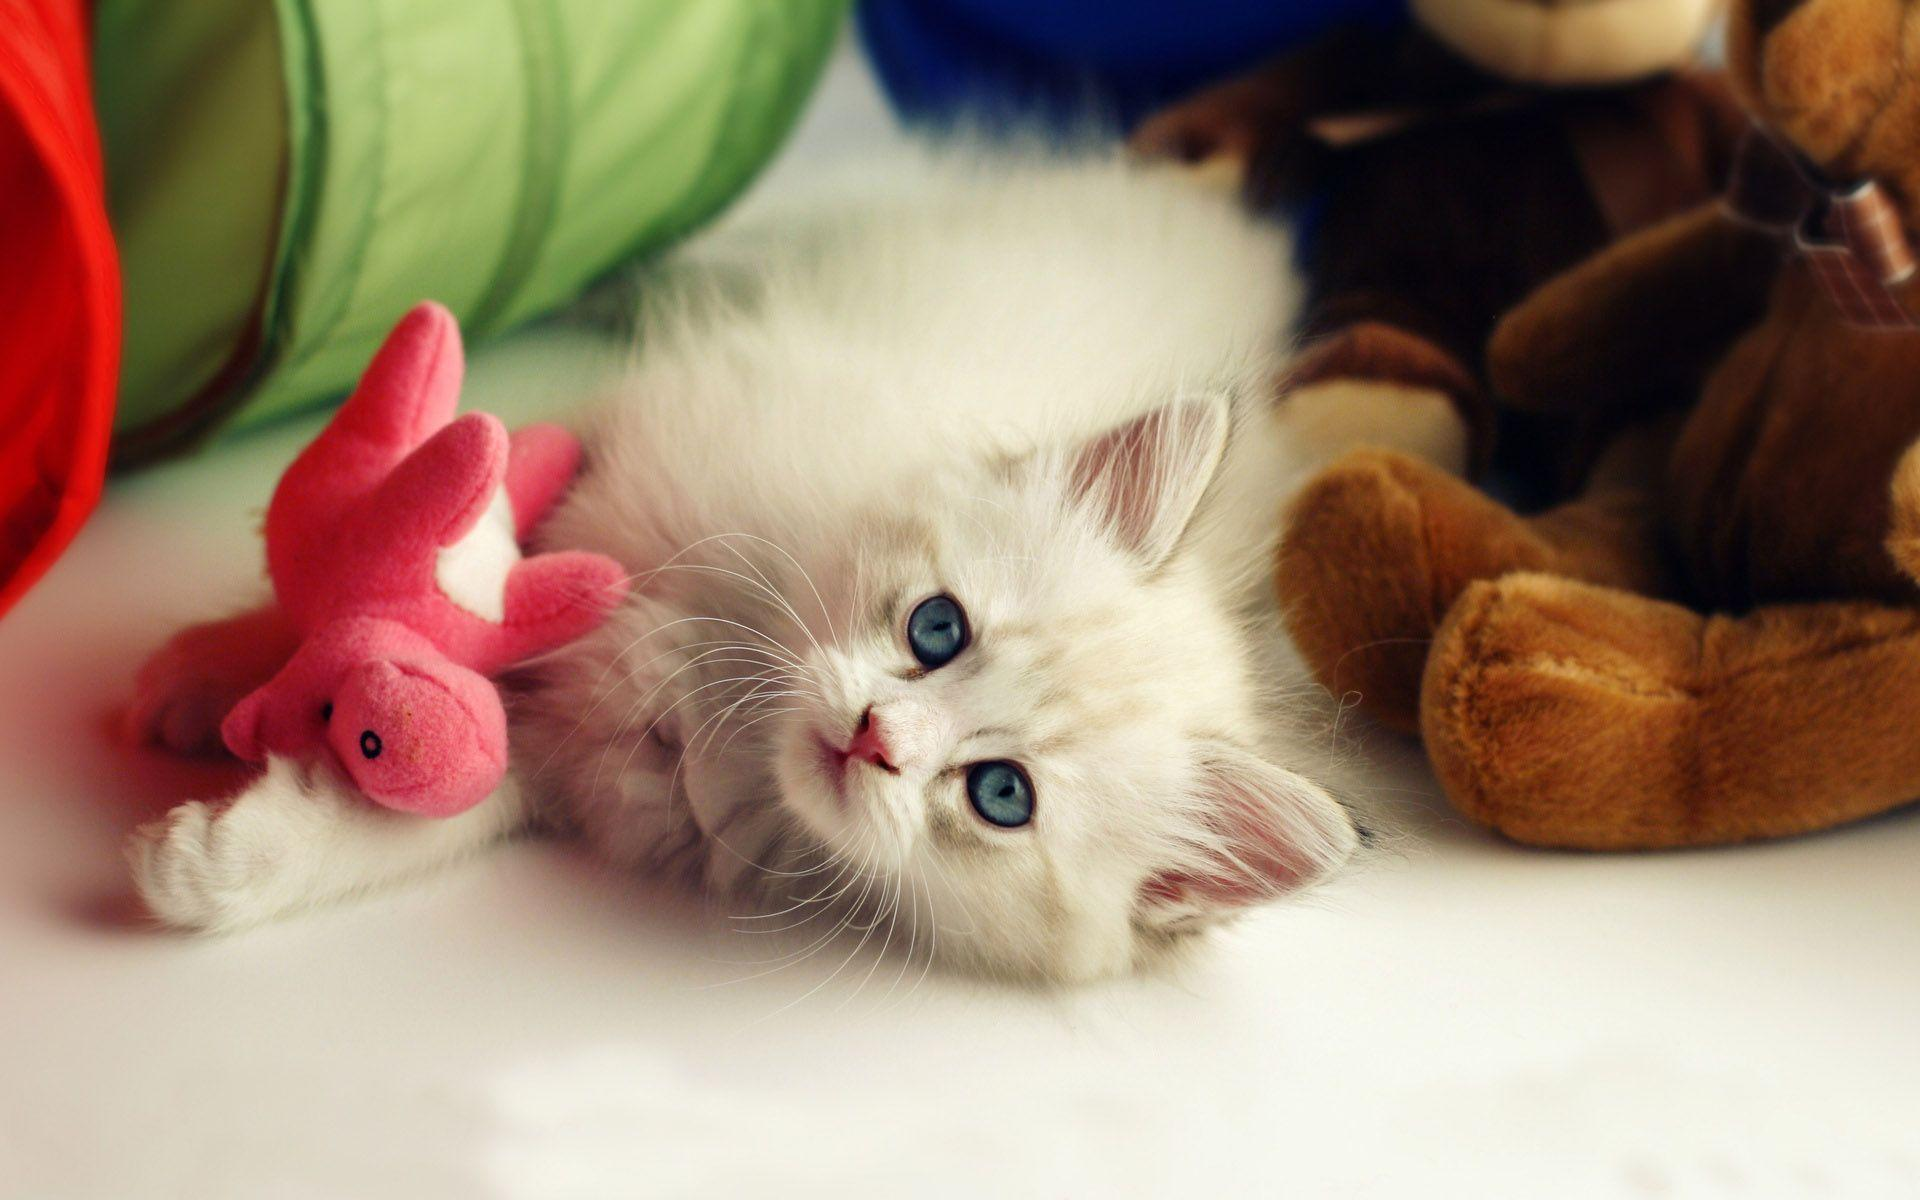 hd wallpapers of cute cats - photo #7